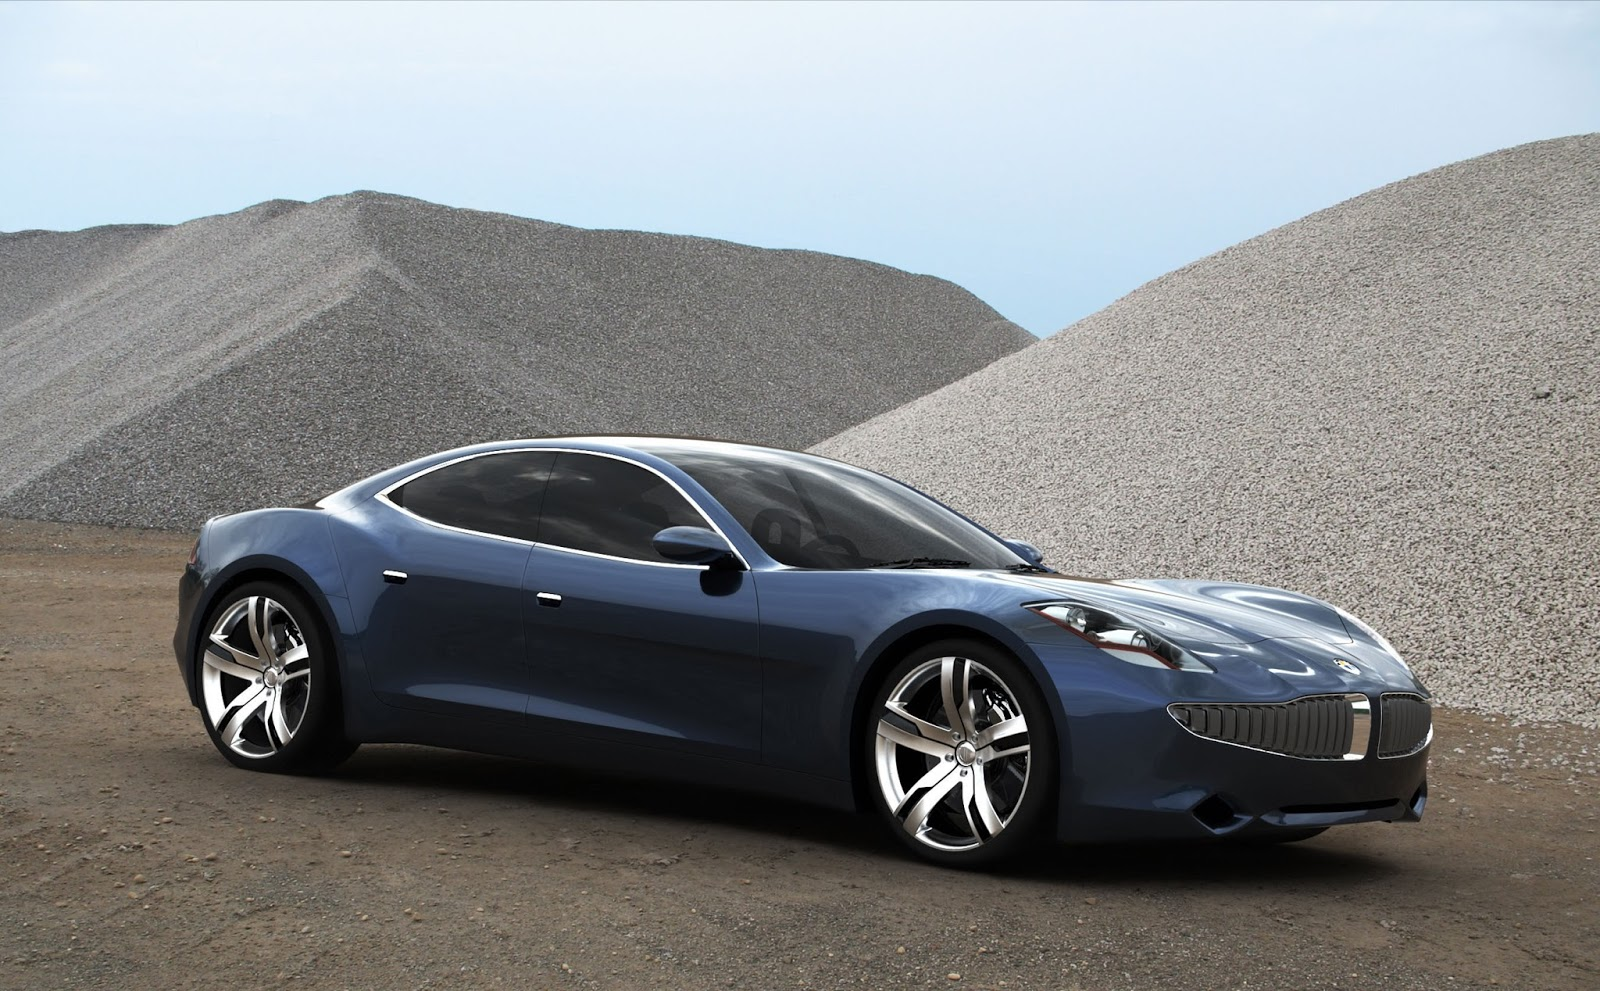 Car Fisker Karma Sedan Best Pictures Of 2013-2014 ~ Cars ...